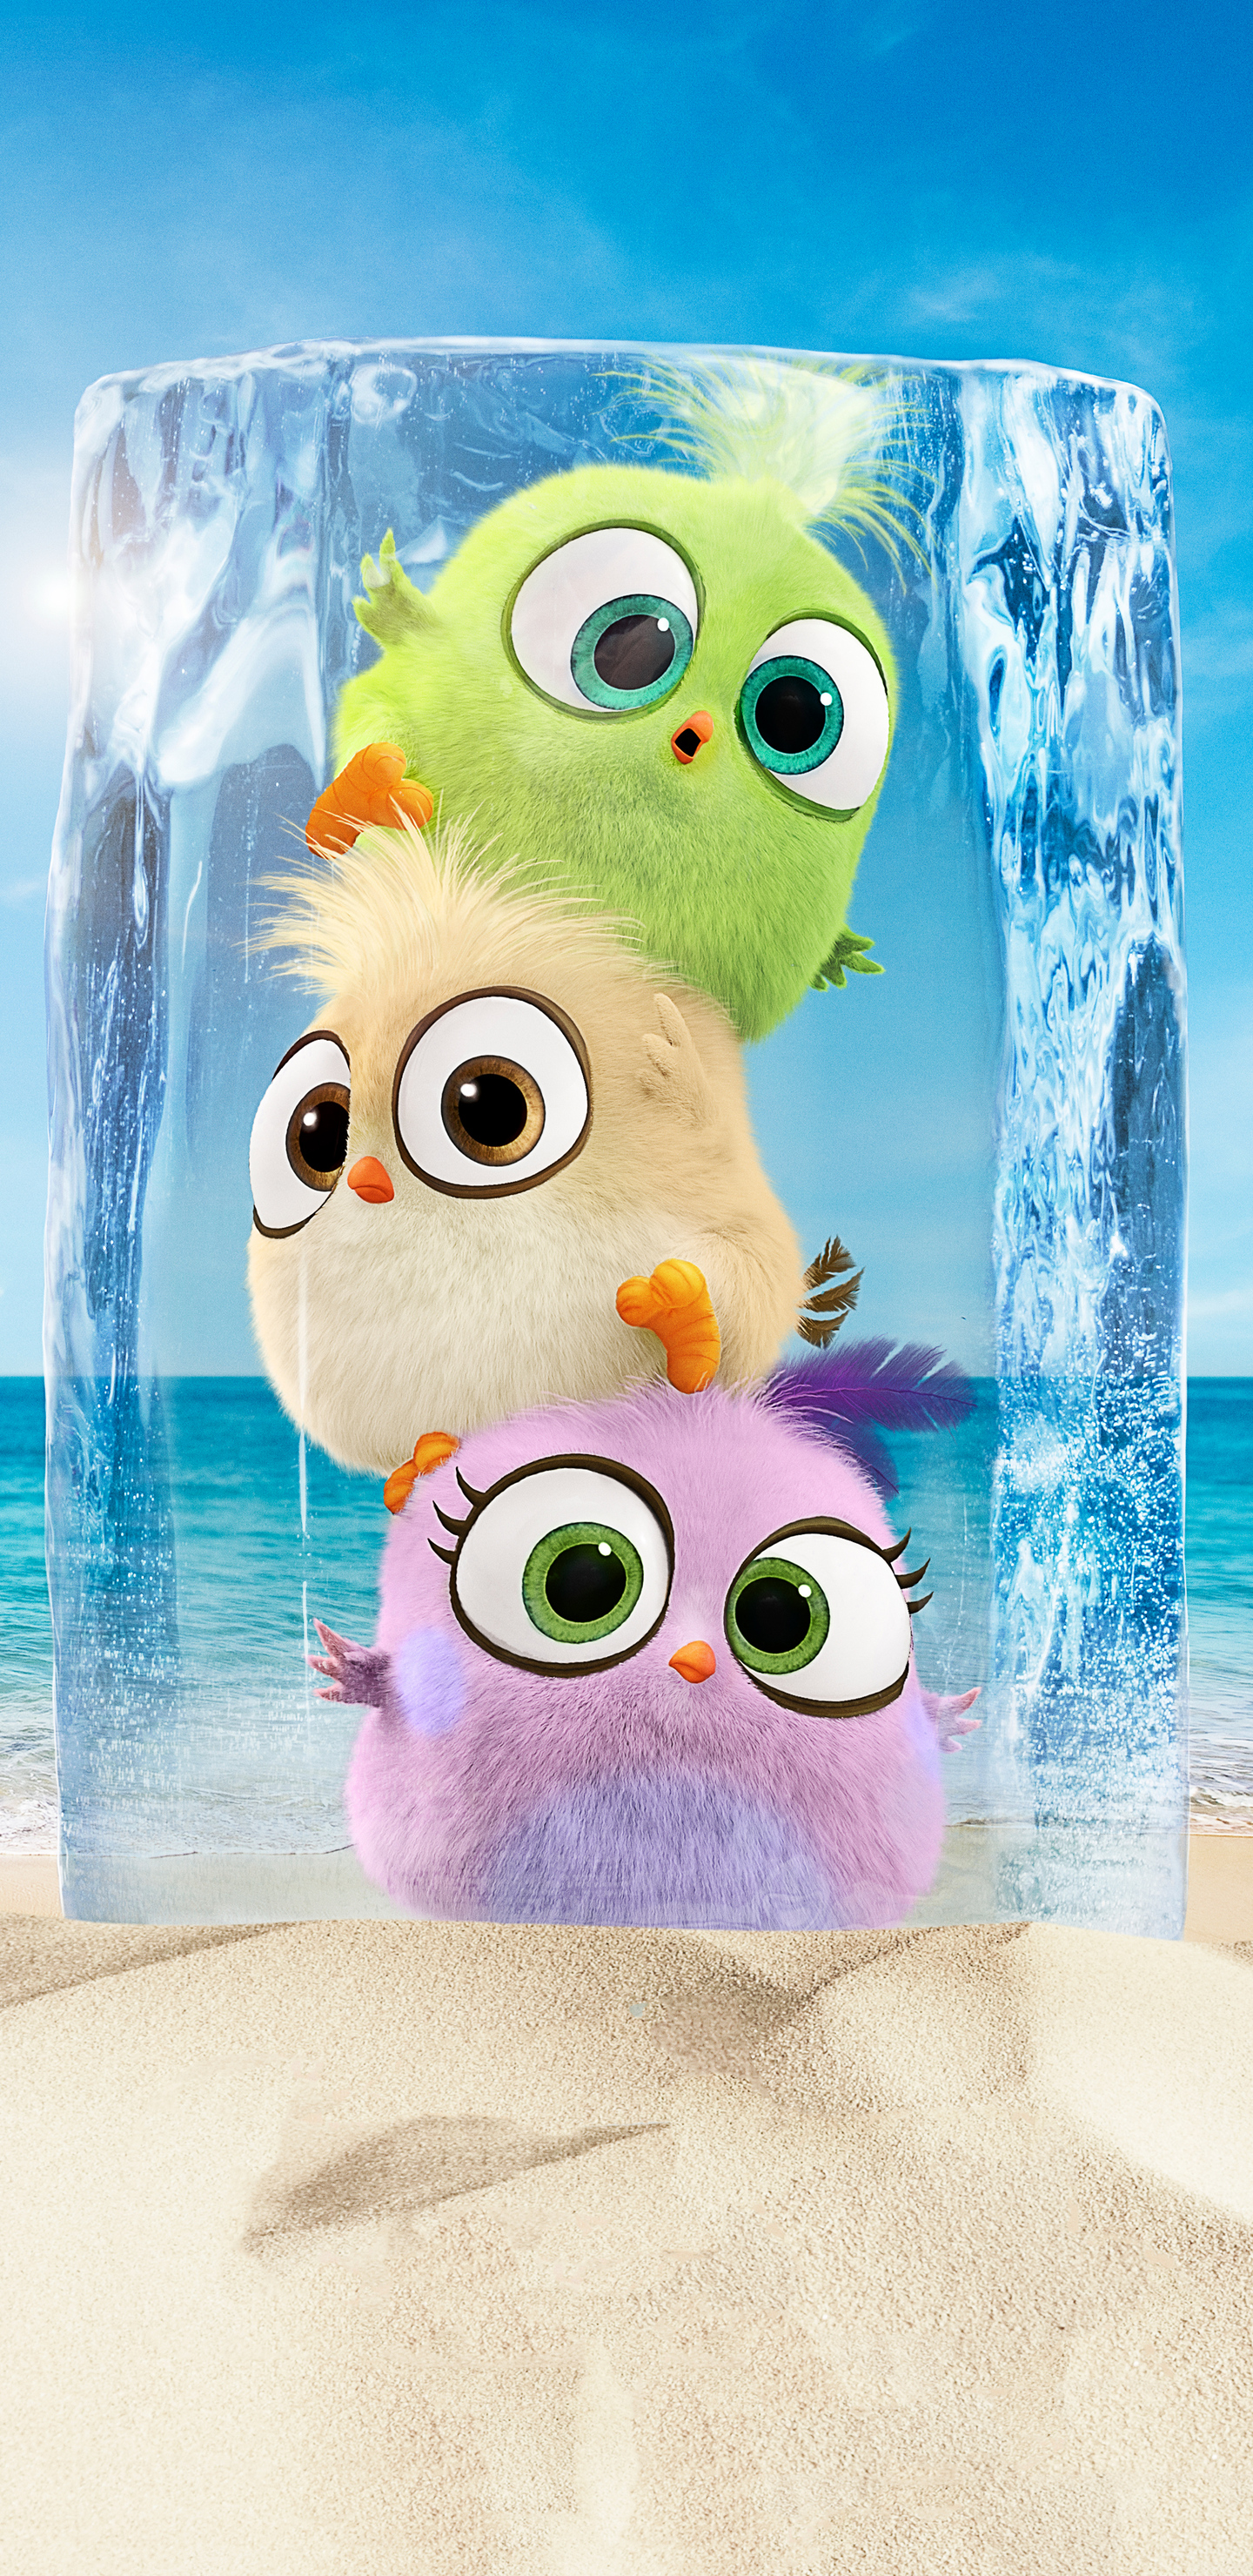 1440x2960 Hatchlings In The Angry Birds Movie 2 Samsung Galaxy Note 9 8 S9 S8 S8 Qhd Hd 4k Wallpapers Images Backgrounds Photos And Pictures